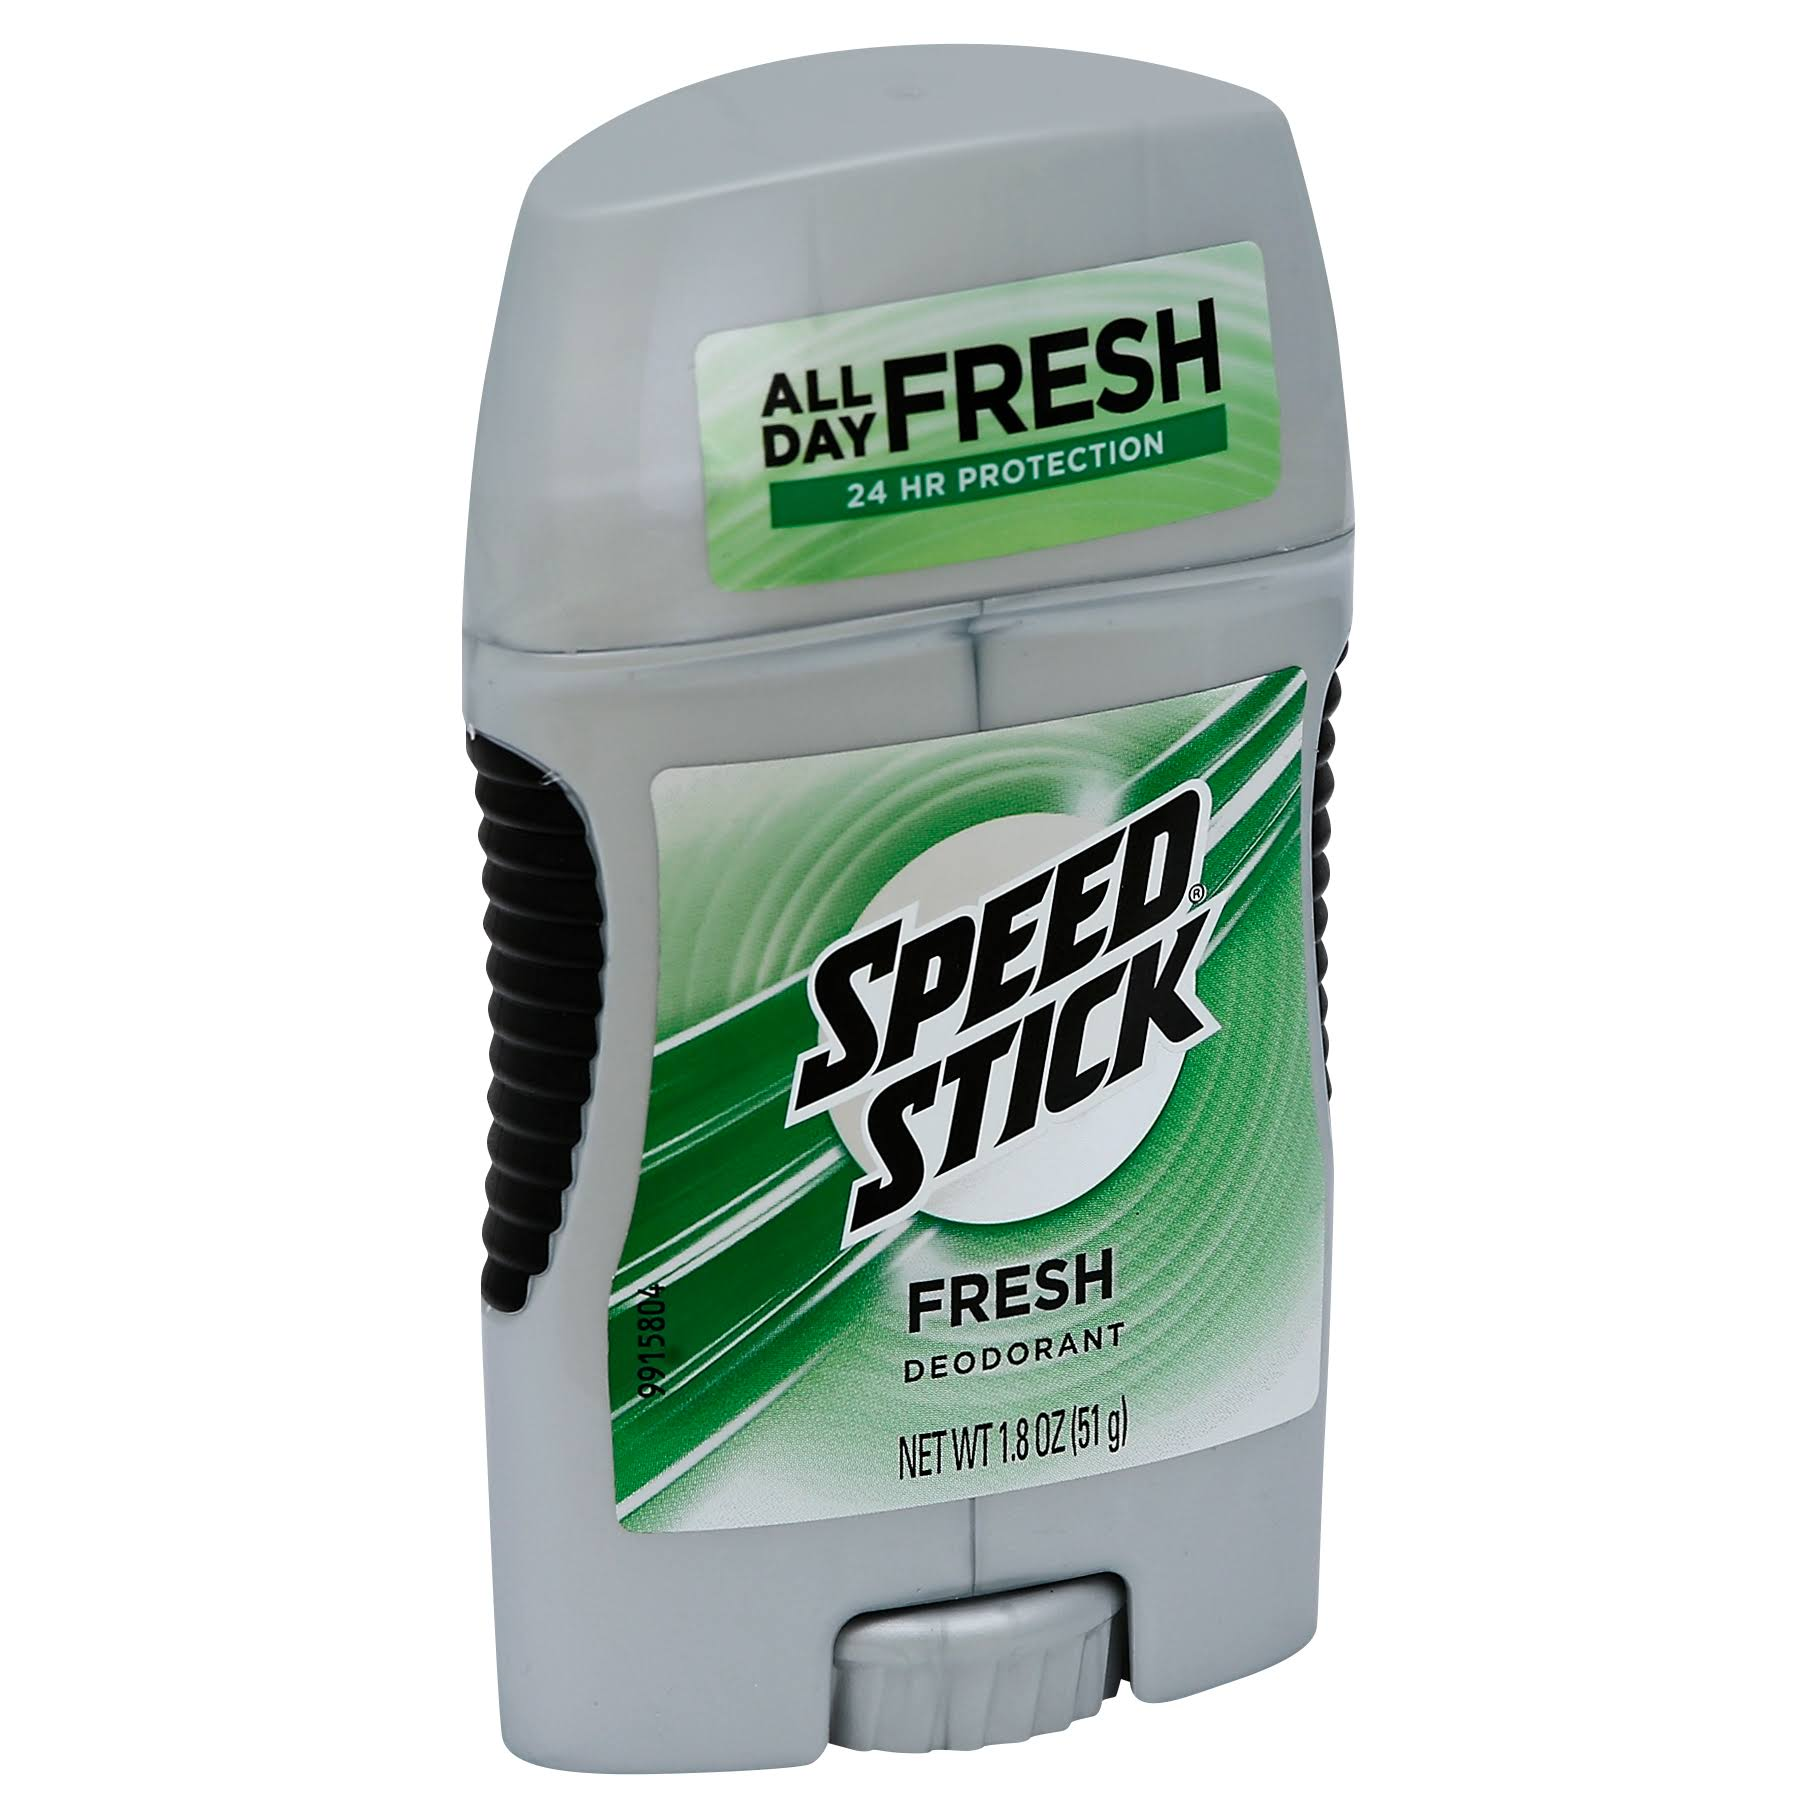 Speed Stick Active Fresh Deodorant - 1.8oz